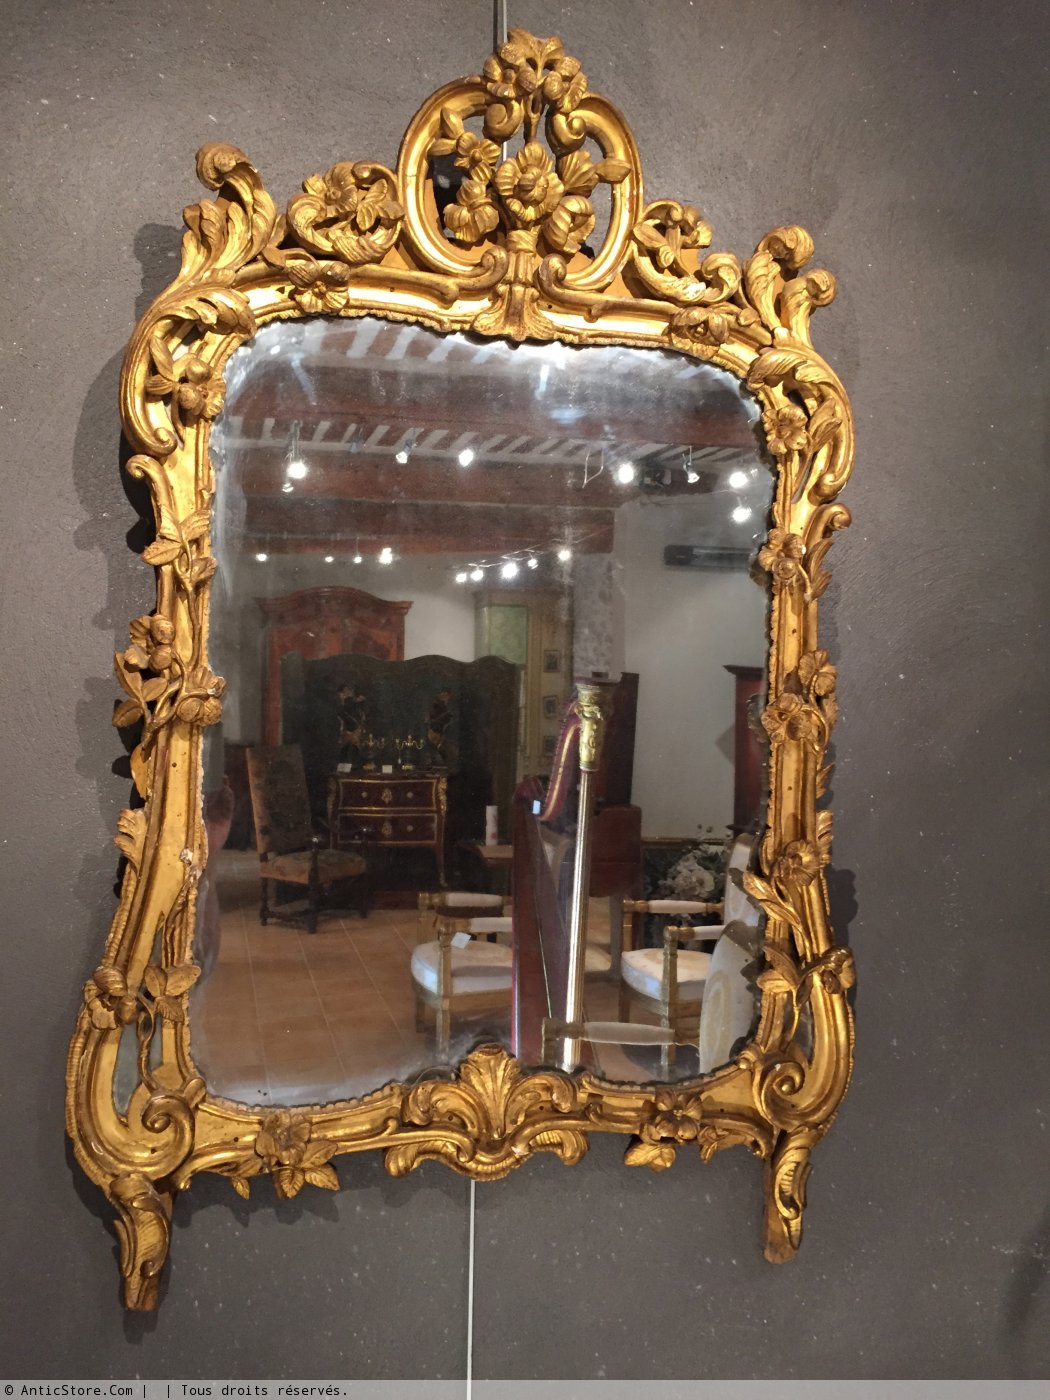 miroir en bois dor provence poque louis xv xviiie si cle. Black Bedroom Furniture Sets. Home Design Ideas